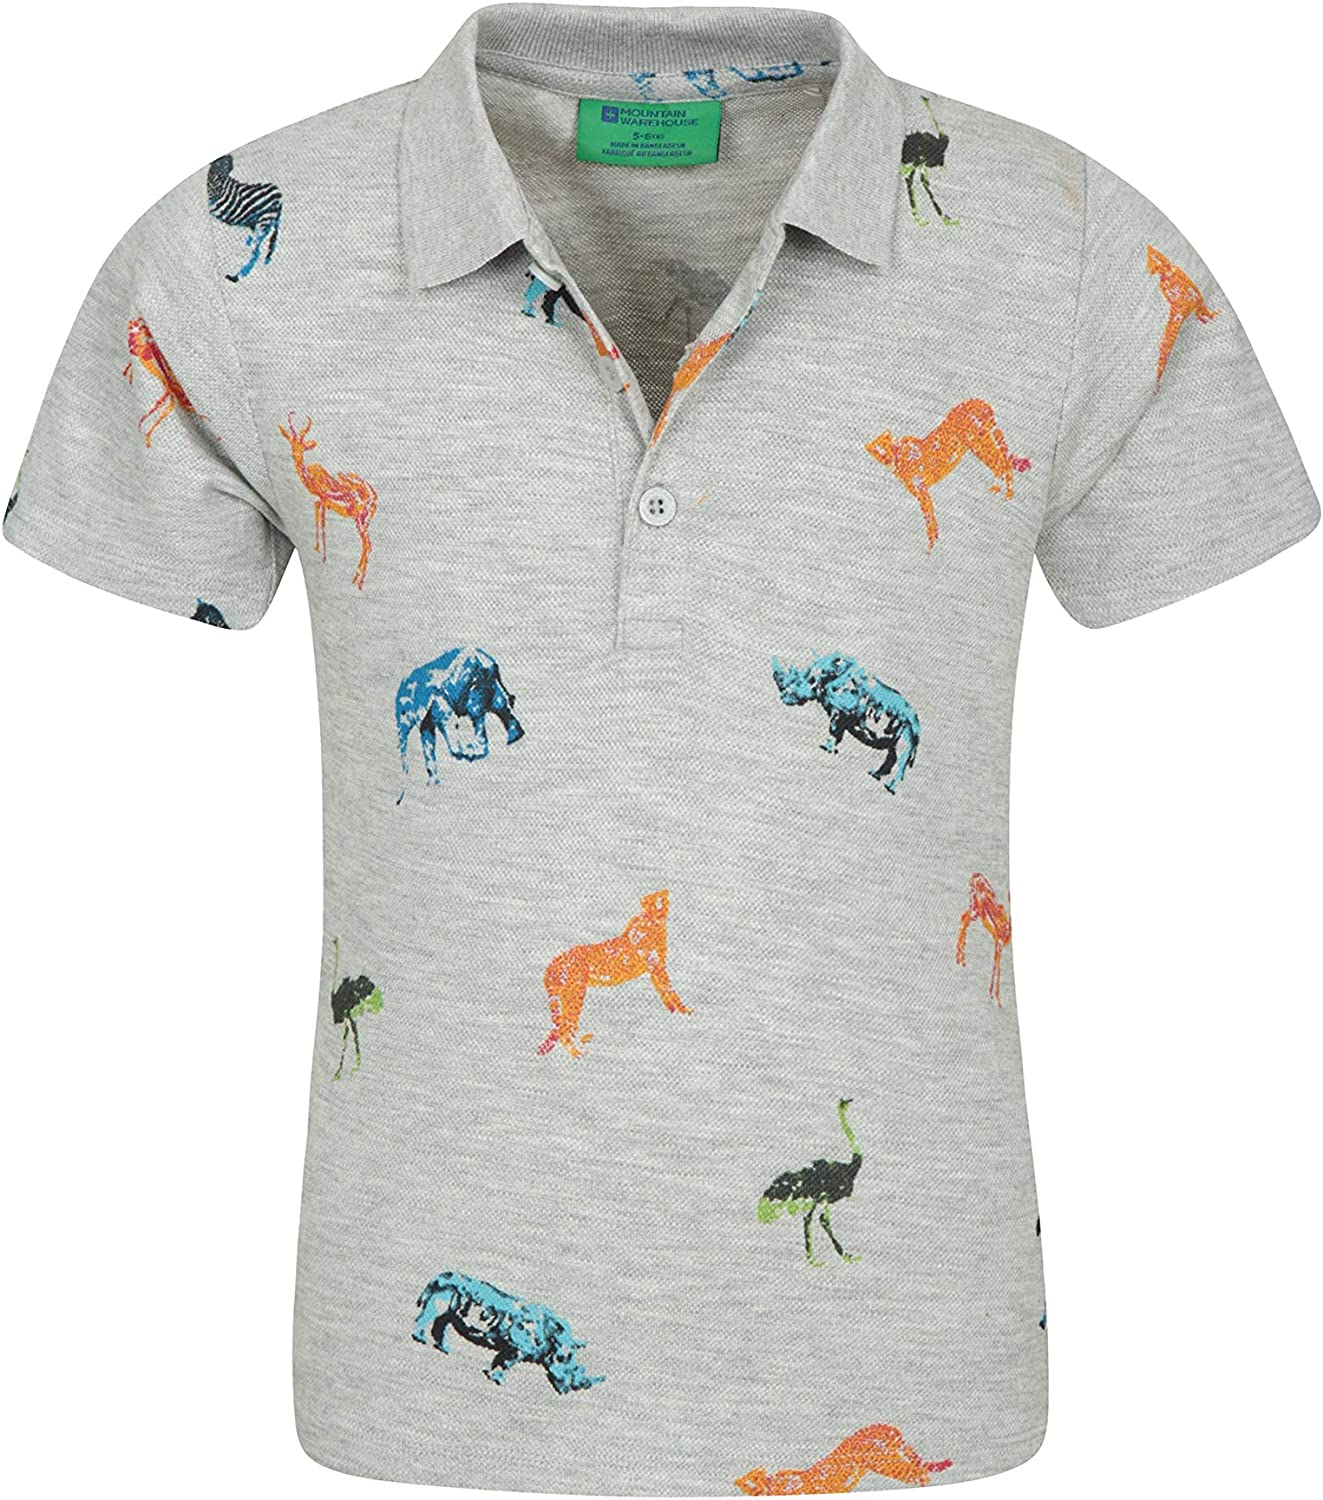 Camping Lightweight Easy Care Top Travelling Mountain Warehouse Printed Kids Polo Shirt Ideal for Summer Hiking 100/% Cotton